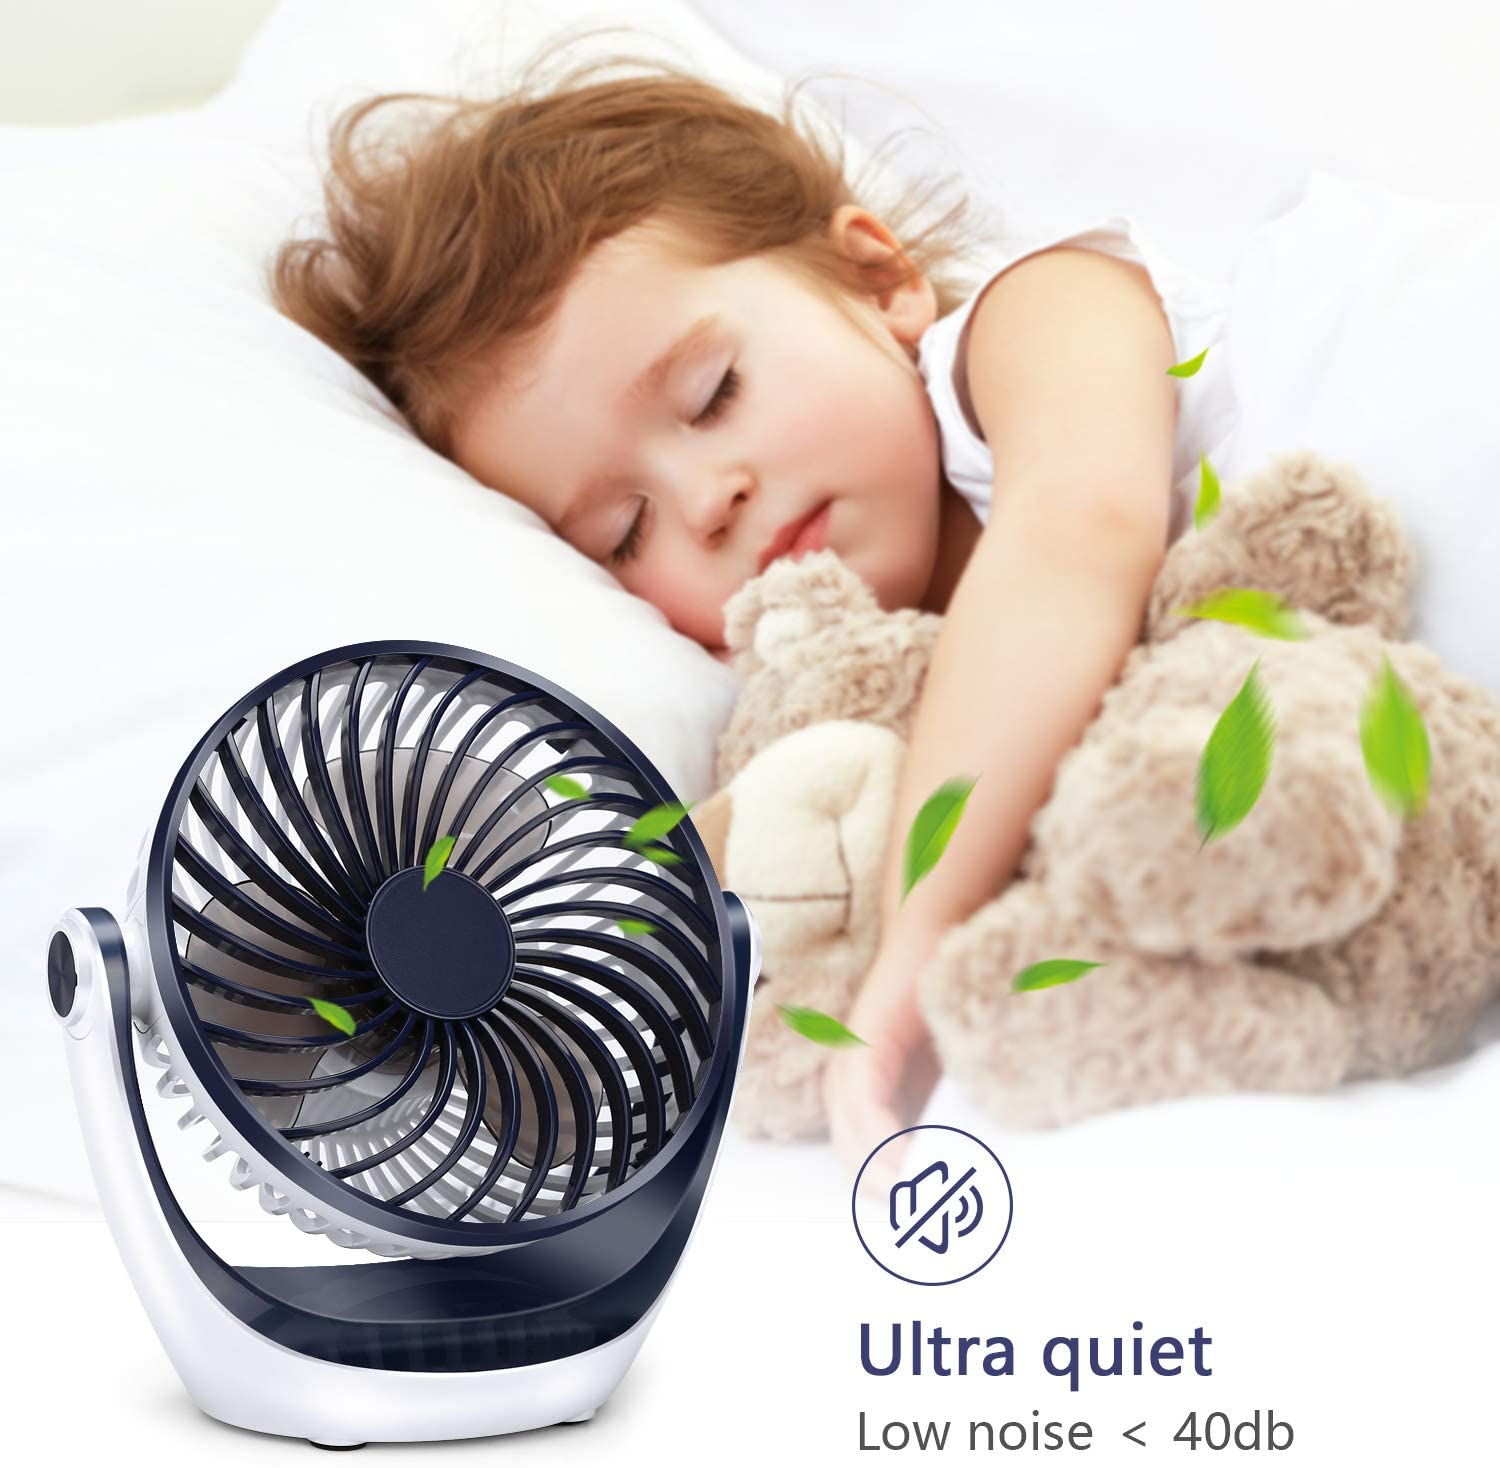 Aluan Desk Fan Small Table Fan with Strong Airflow Quiet Operation Portable Fan Speed Adjustable Head 360°Rotatable Mini Personal Fan for Home Office Bedroom Table and Desktop 5.1 Inch: Home & Kitchen